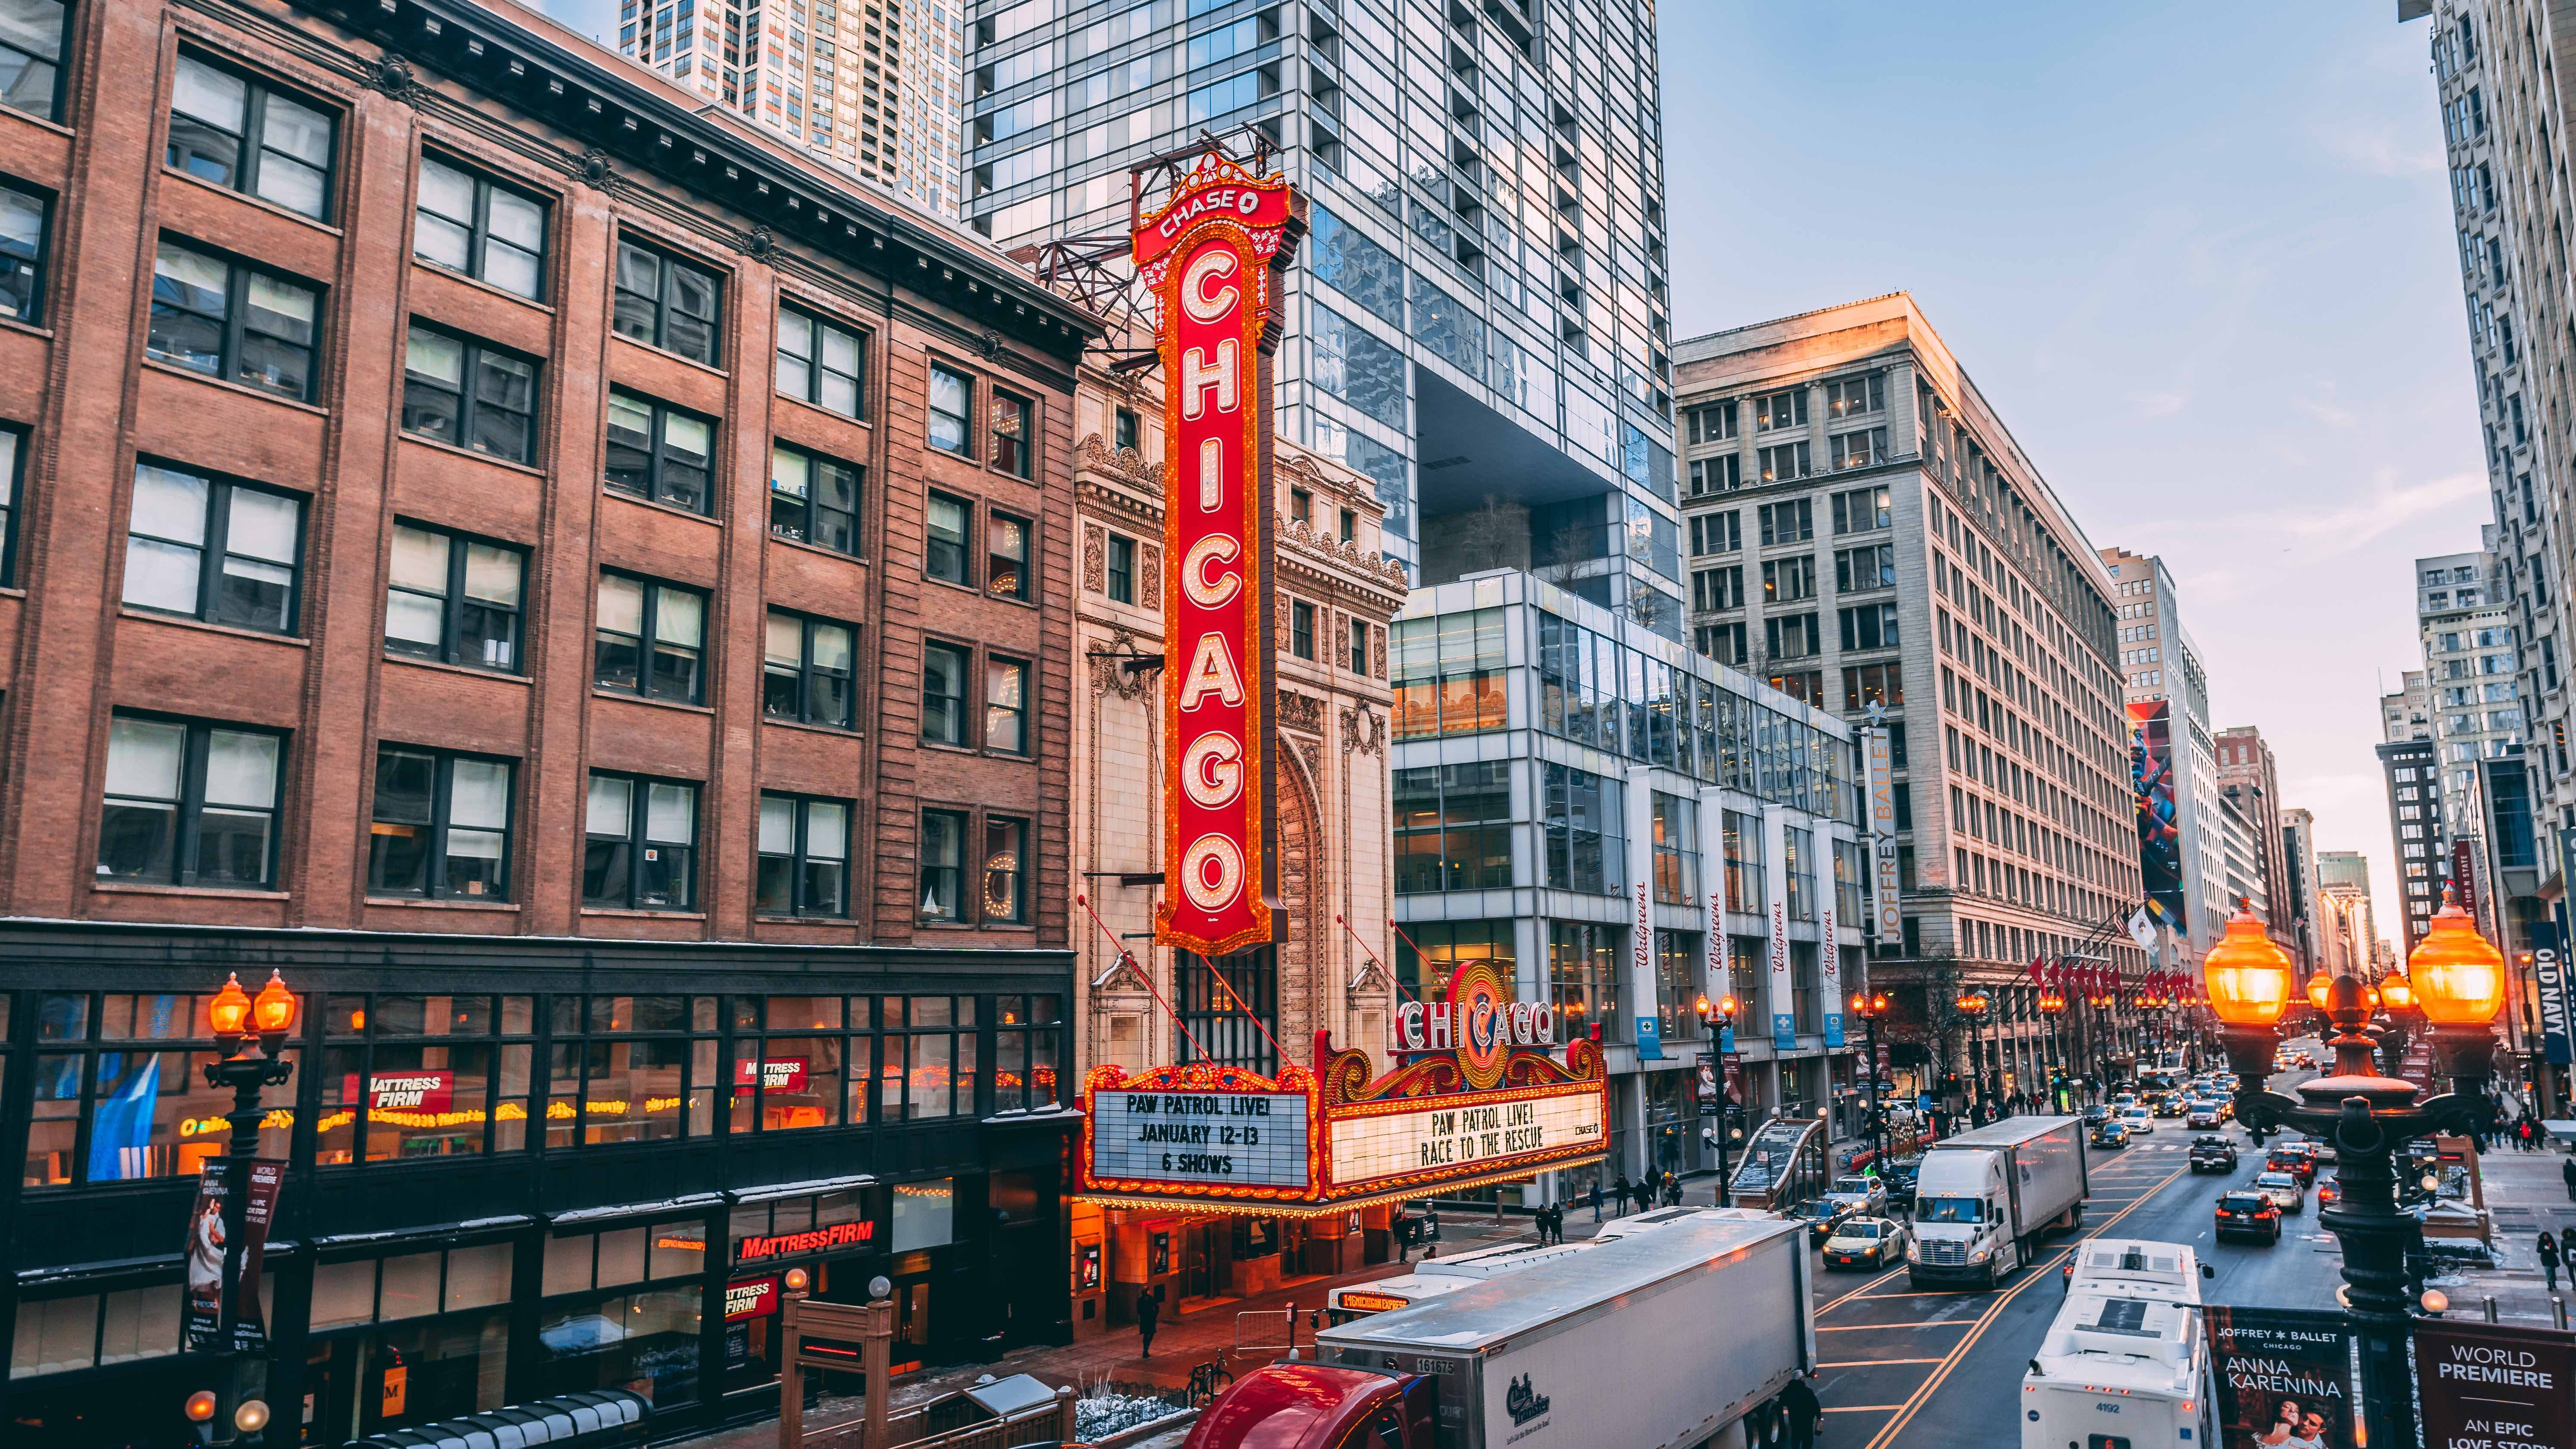 Looking for Unique Shopping in the Chicago Loop? We've Got You Covered